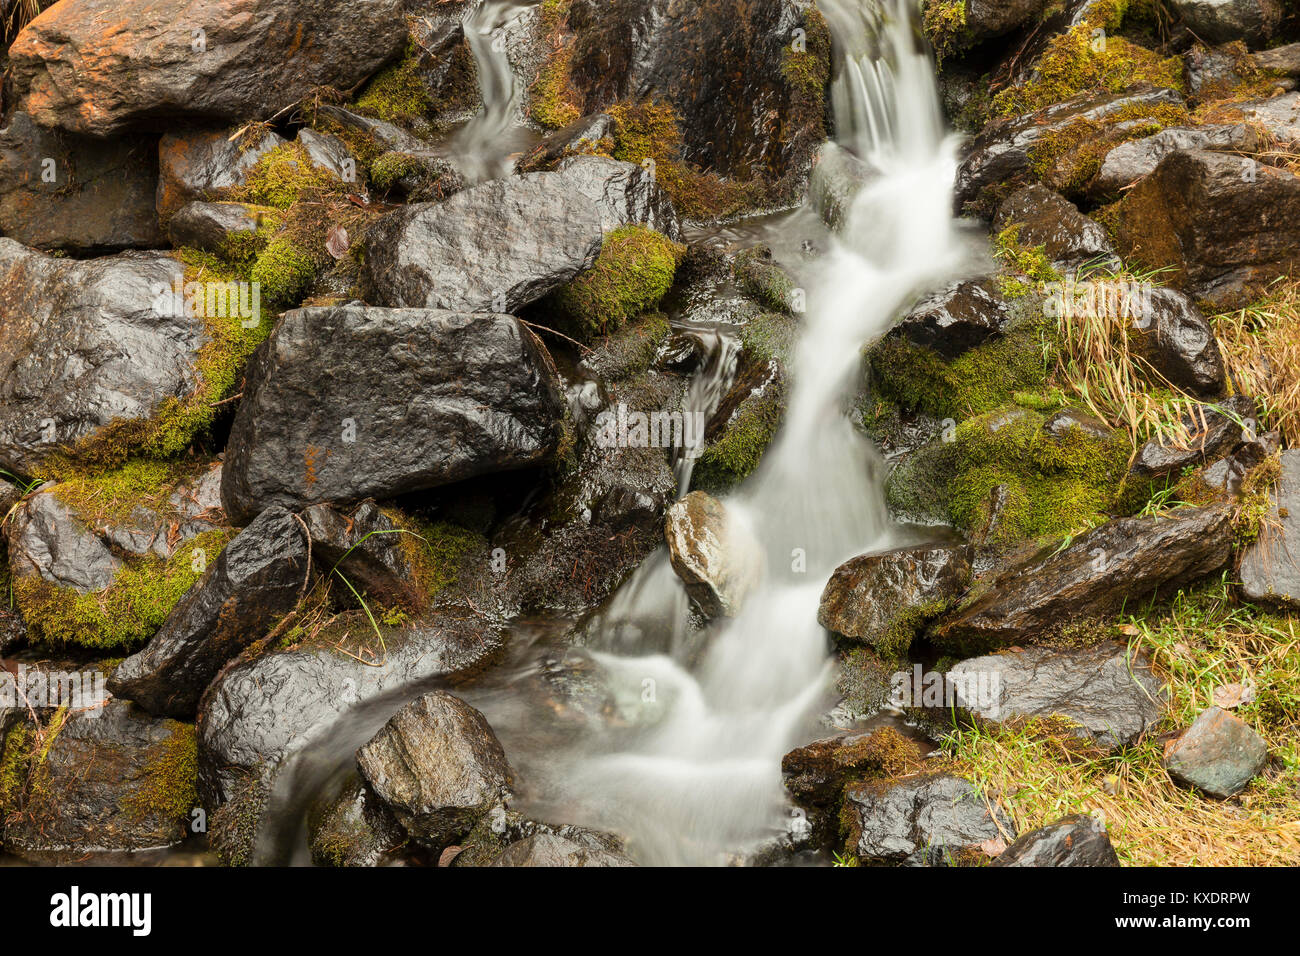 Small waterfall between rocks and moss, Aosta Valley, Italy Stock Photo